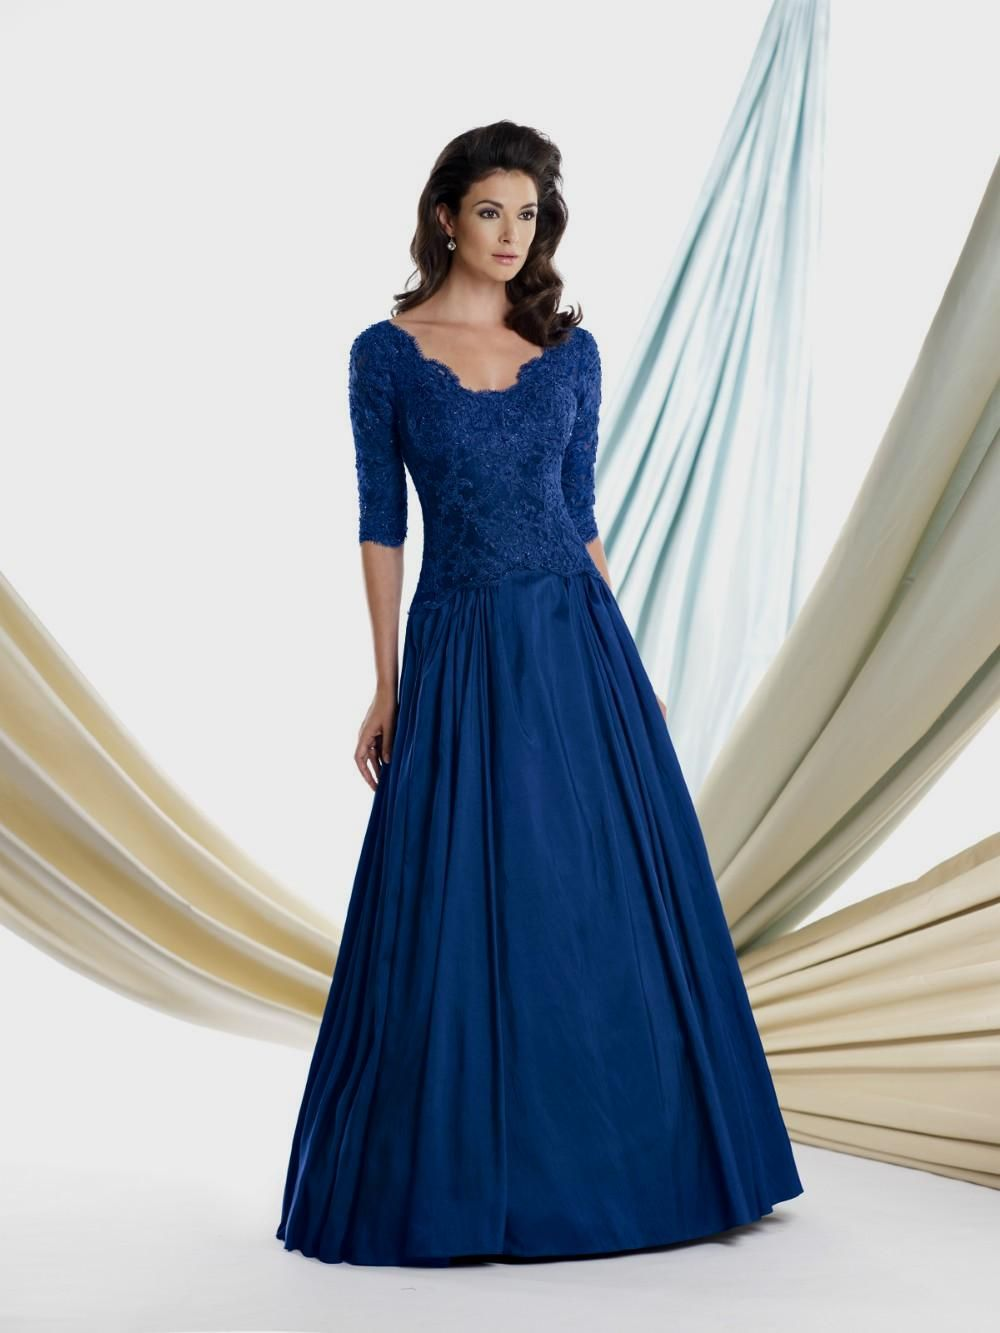 2019 Navy Blue Wedding Dresses Country For Weddings Check More At Http